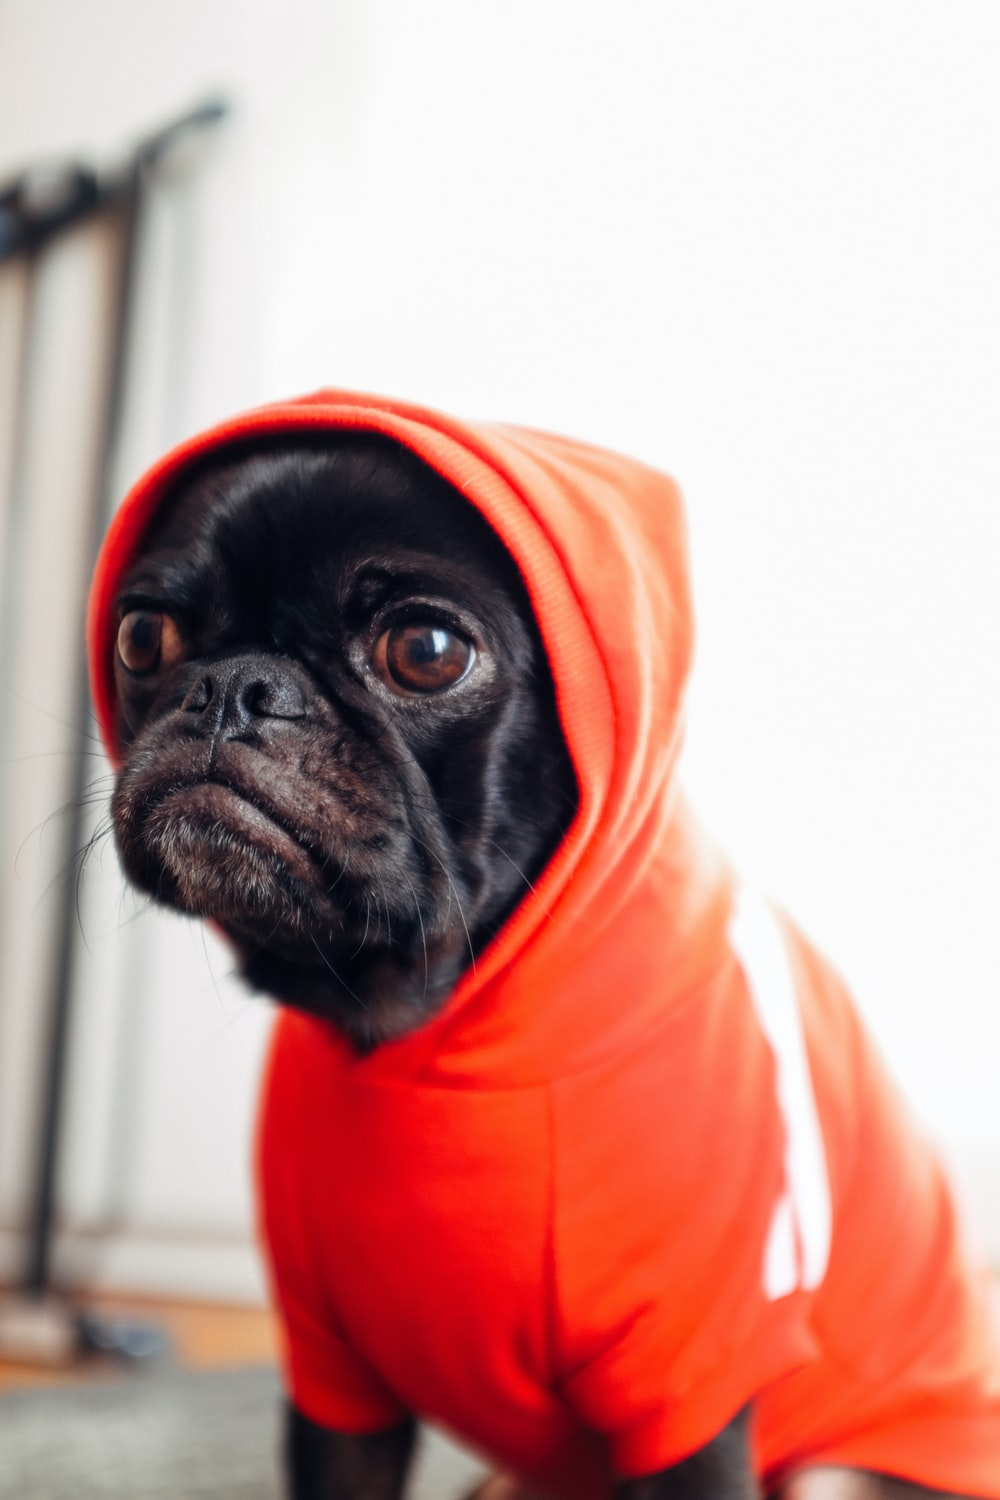 black pug puppy wearing red hooded dress